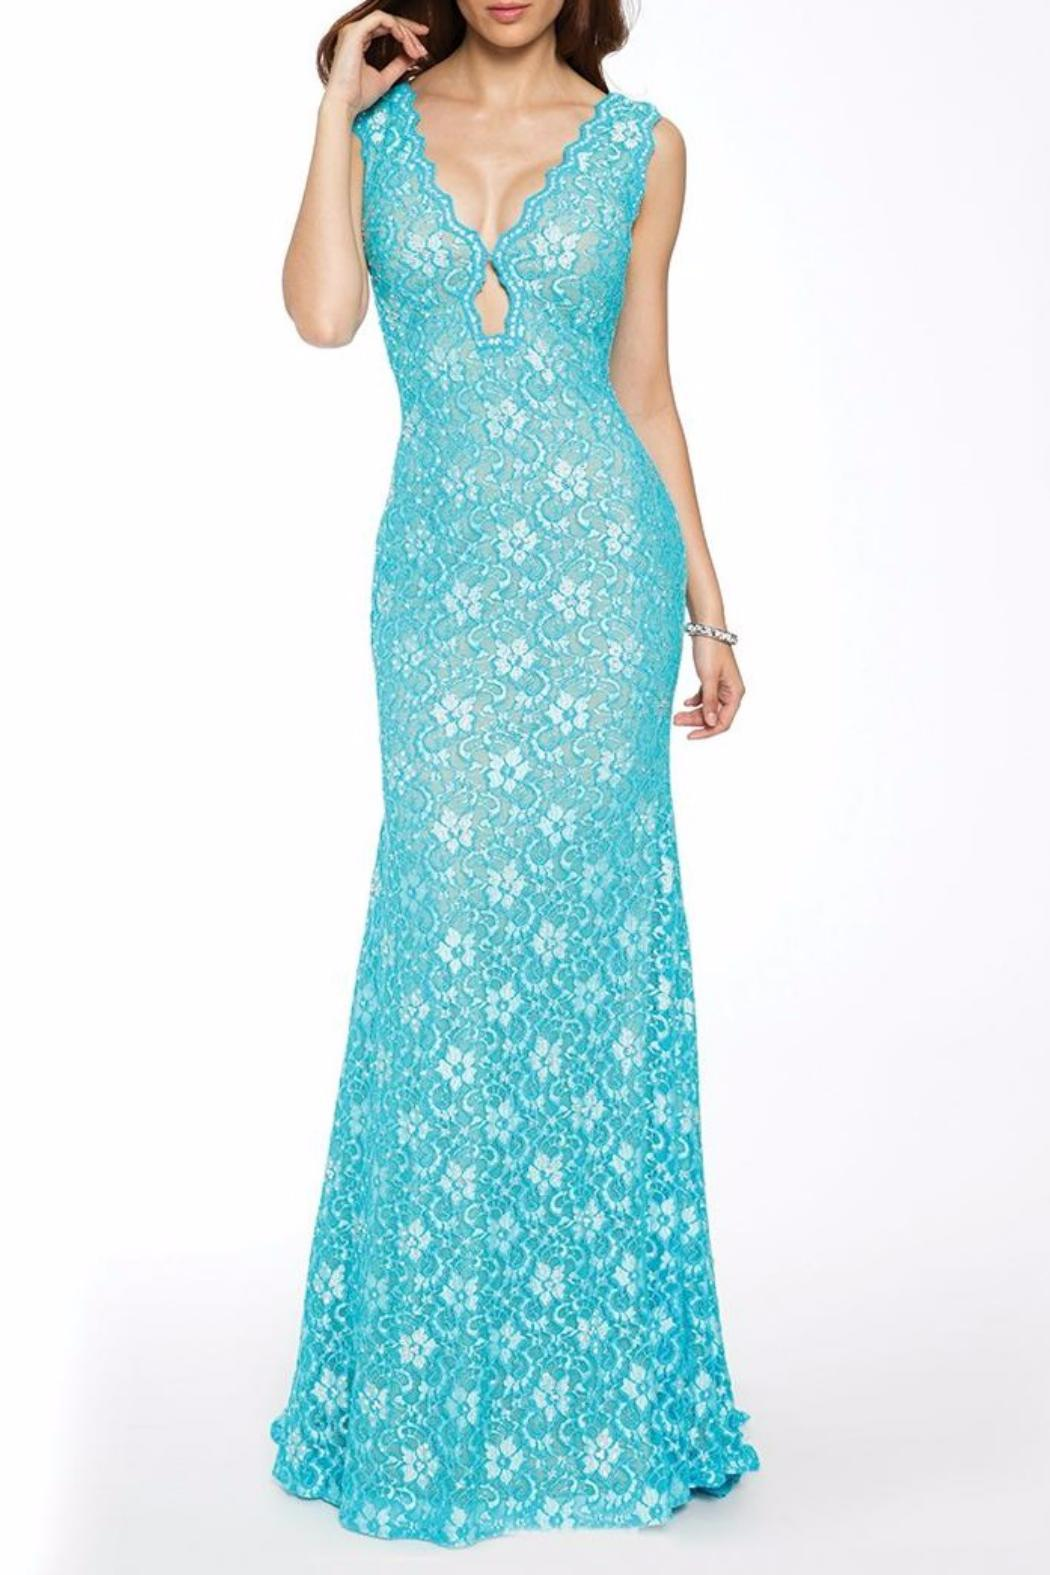 Jovani PROM Prom Dress from New York City by Effie\'s — Shoptiques